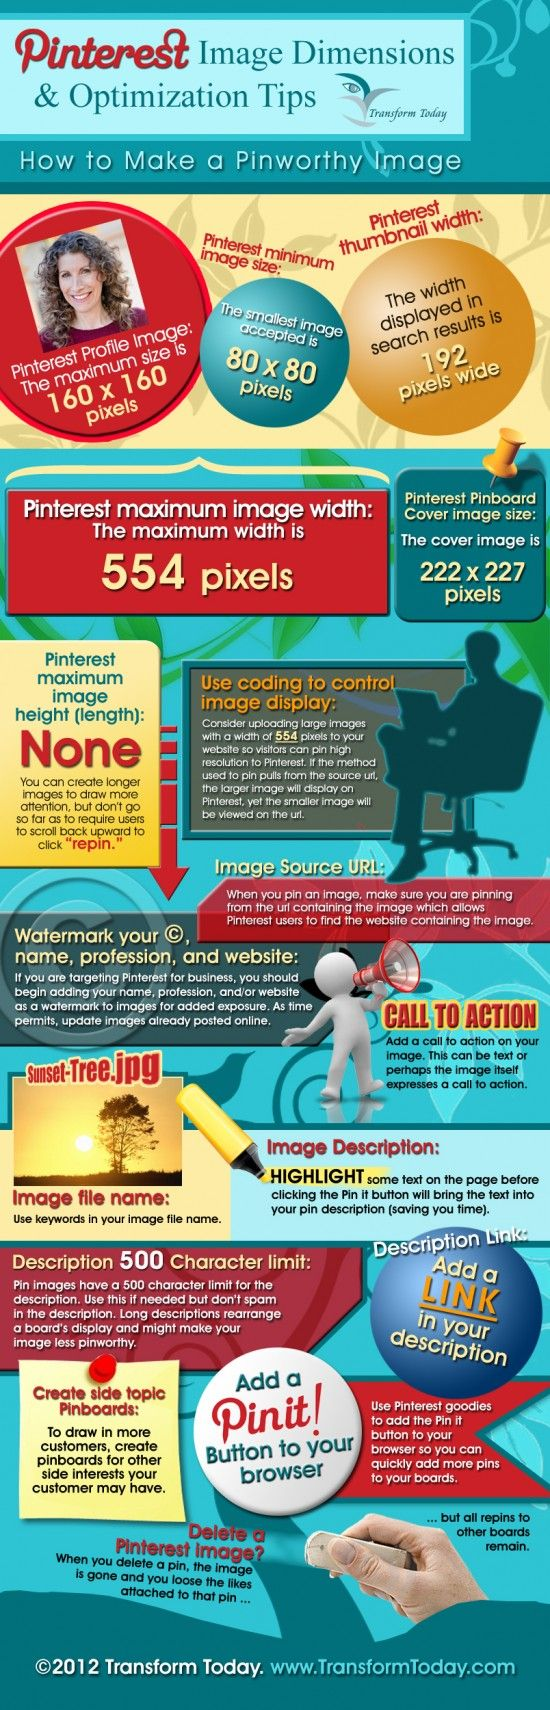 How To Be A Power Pinterest User [infographic]